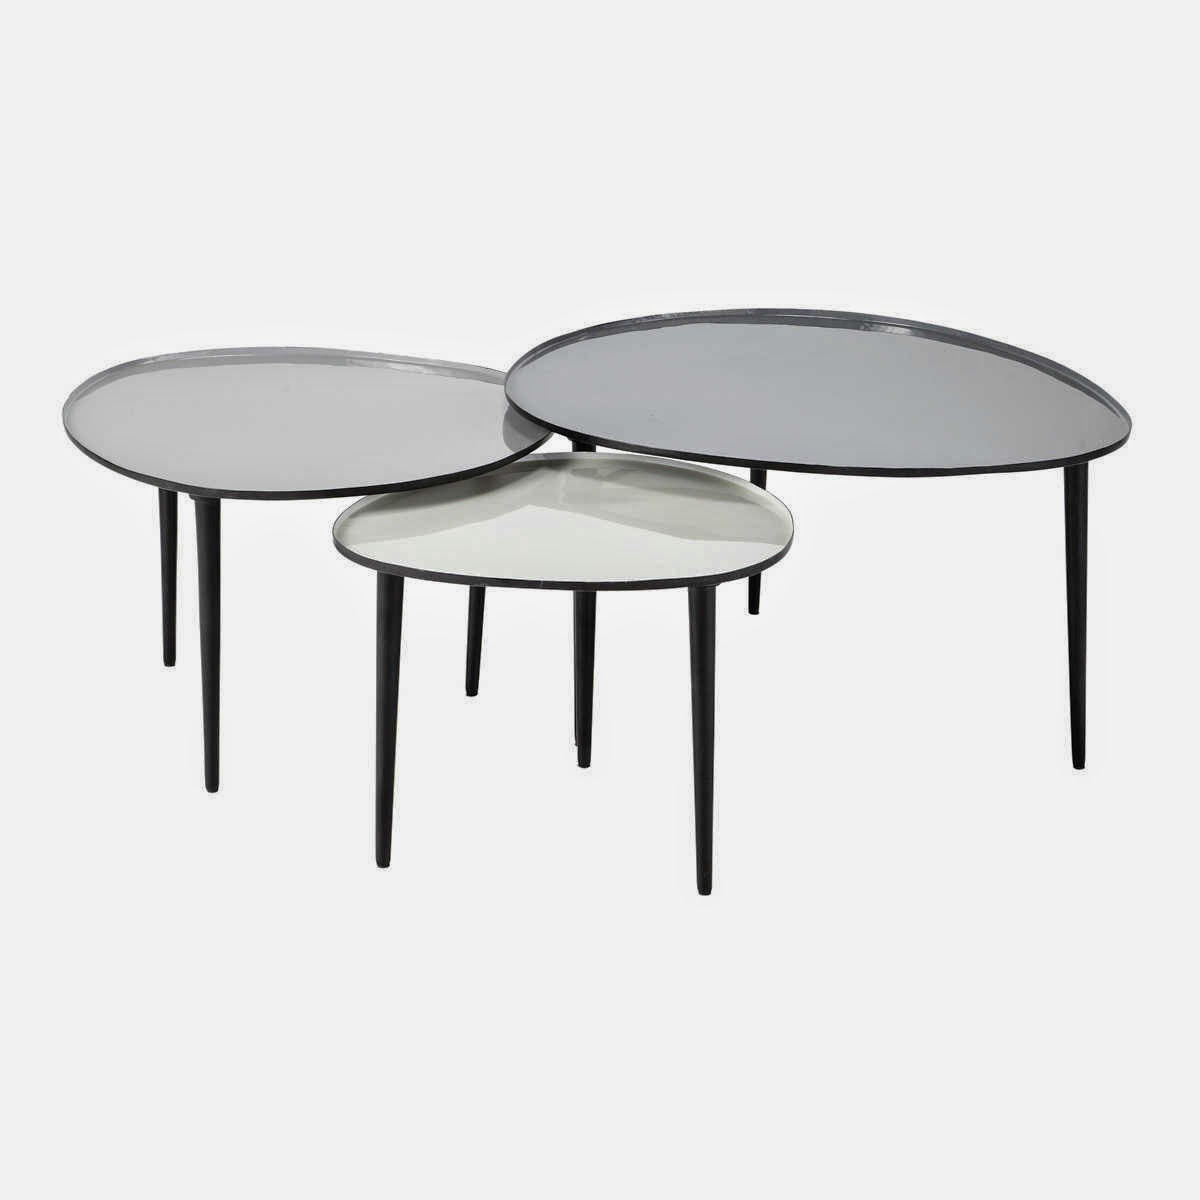 Les tables basses gigognes caract rielle for 2 tables basses gigognes